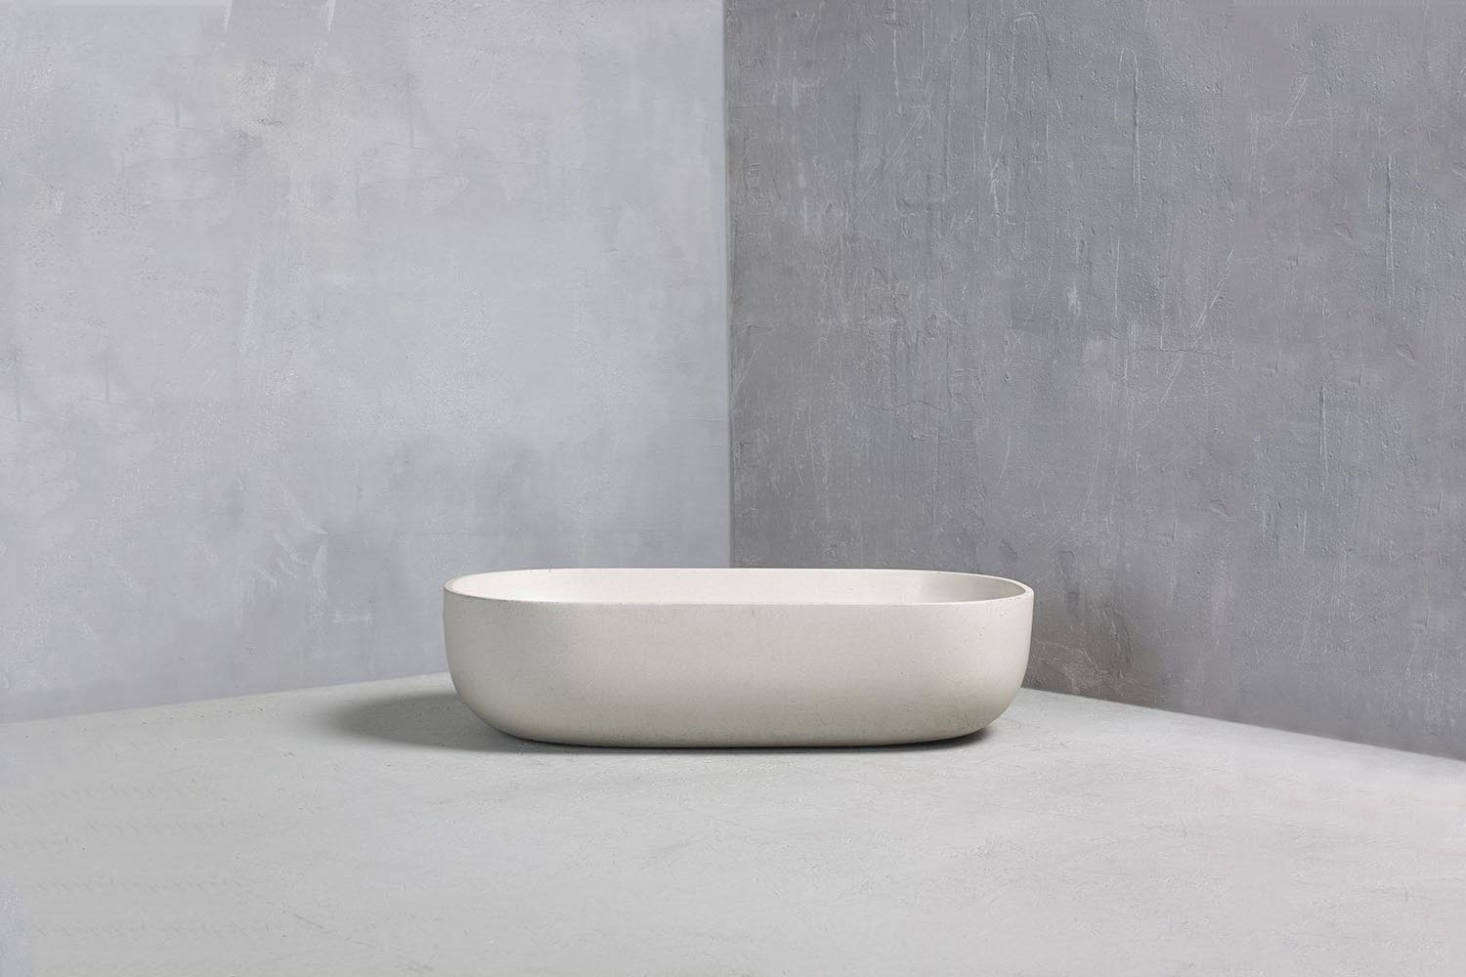 The antique stone wash basin in the bathroom is one-of-a-kind sourced by Chan & Eayrs. For a similar shape, the Bert & May Rho Basin made in collaboration with British maker Kast out of colored concrete basin—shown in Limestone; £src=